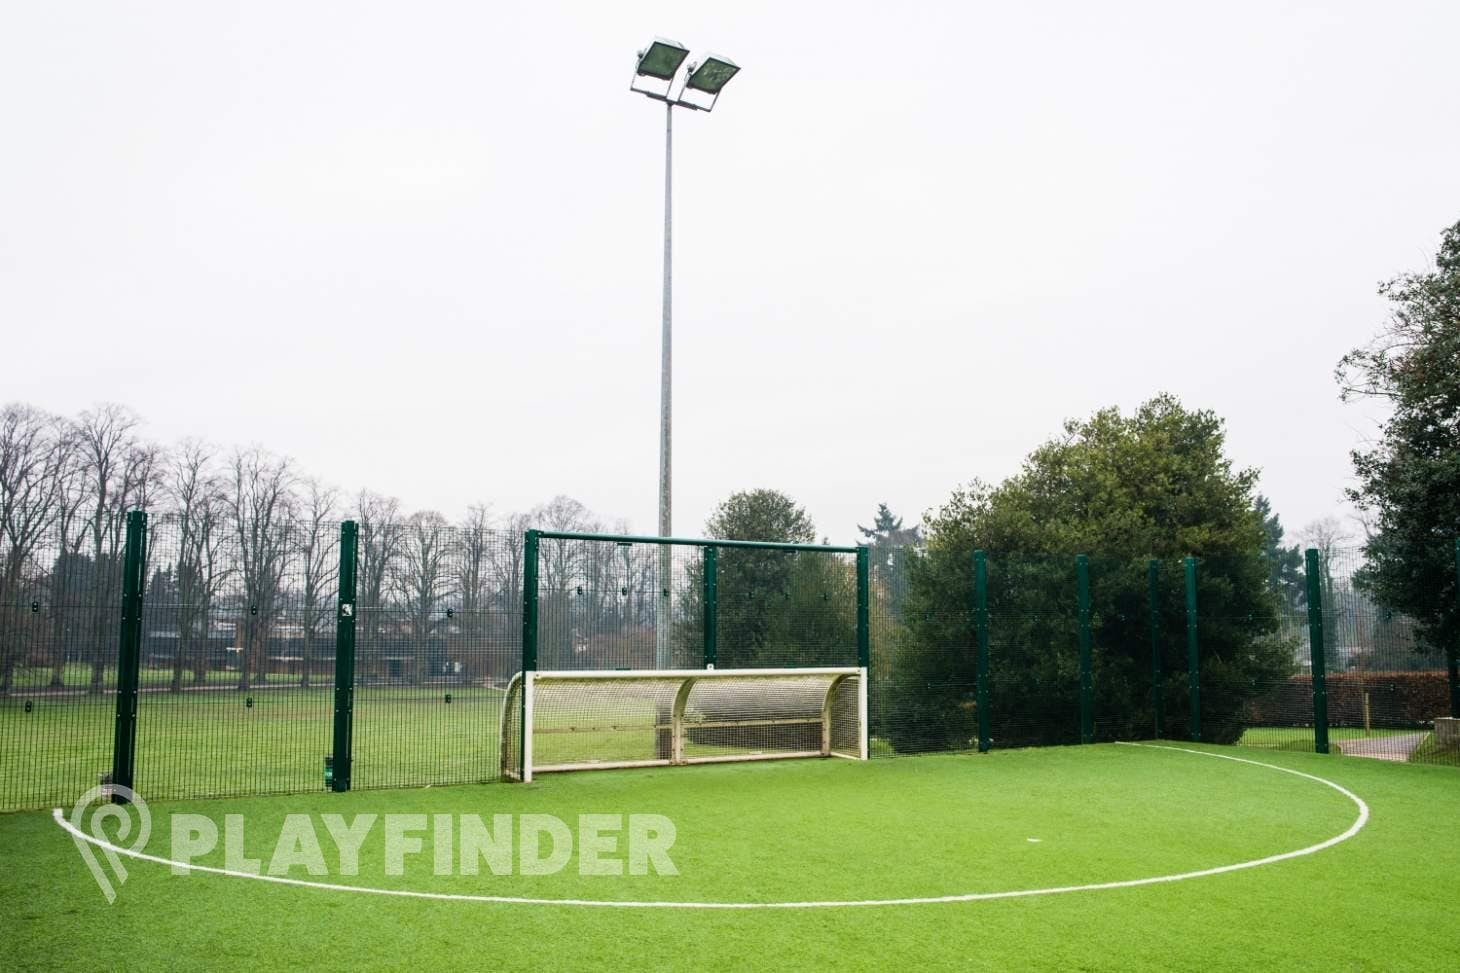 Harpenden Sports Centre 5 a side   3G Astroturf football pitch